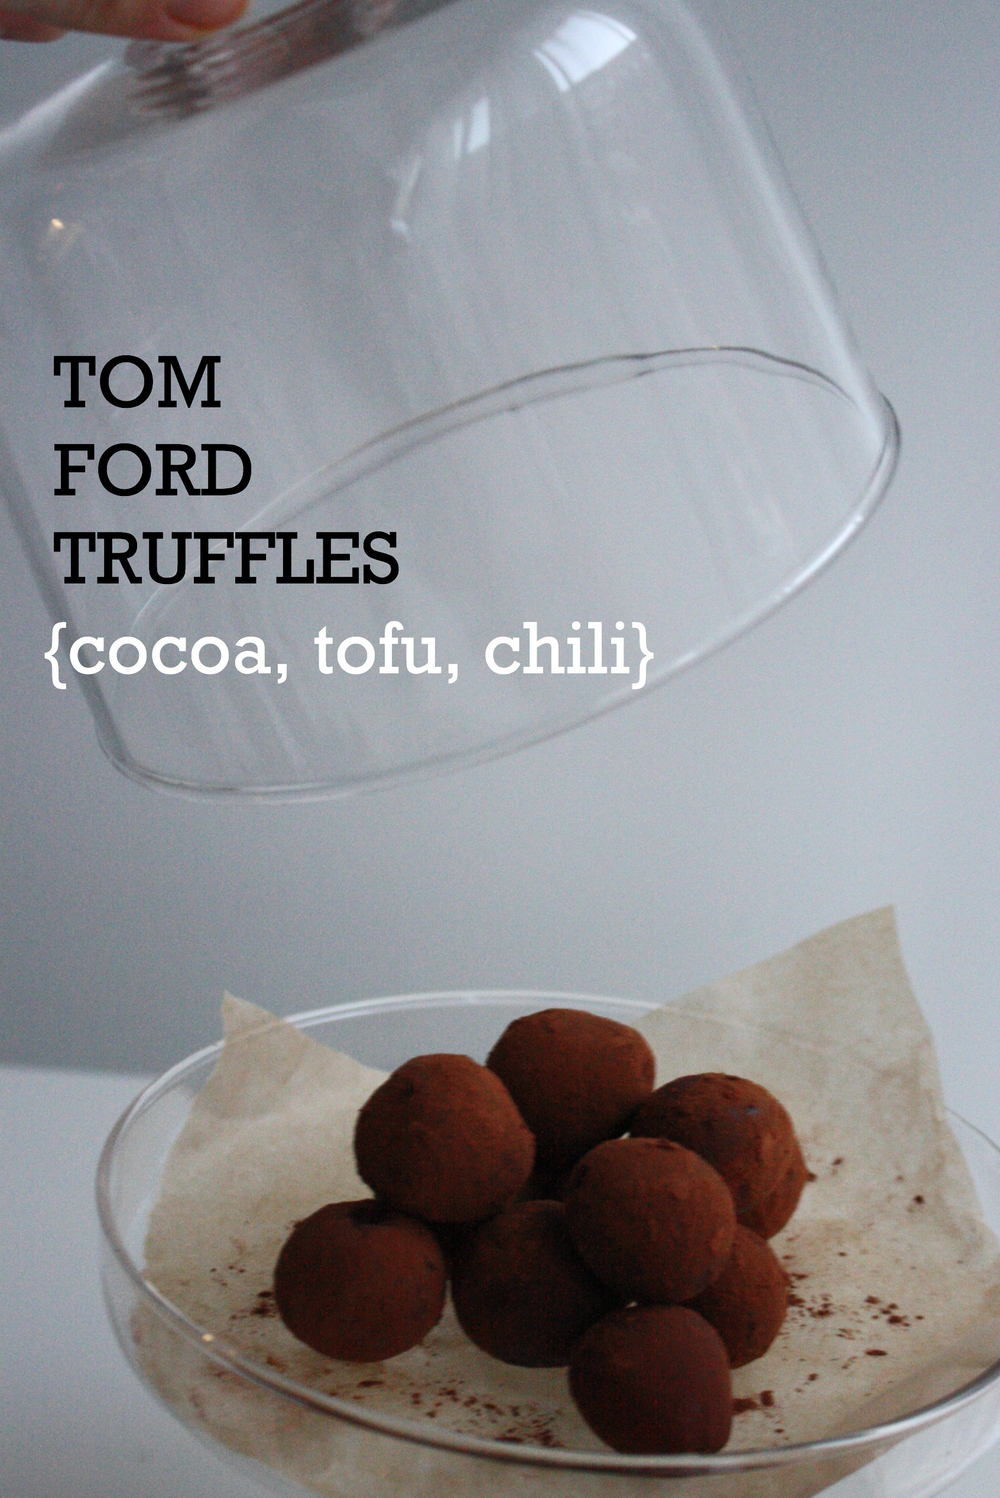 tom ford truffles youngs 22dayvegan.jpg